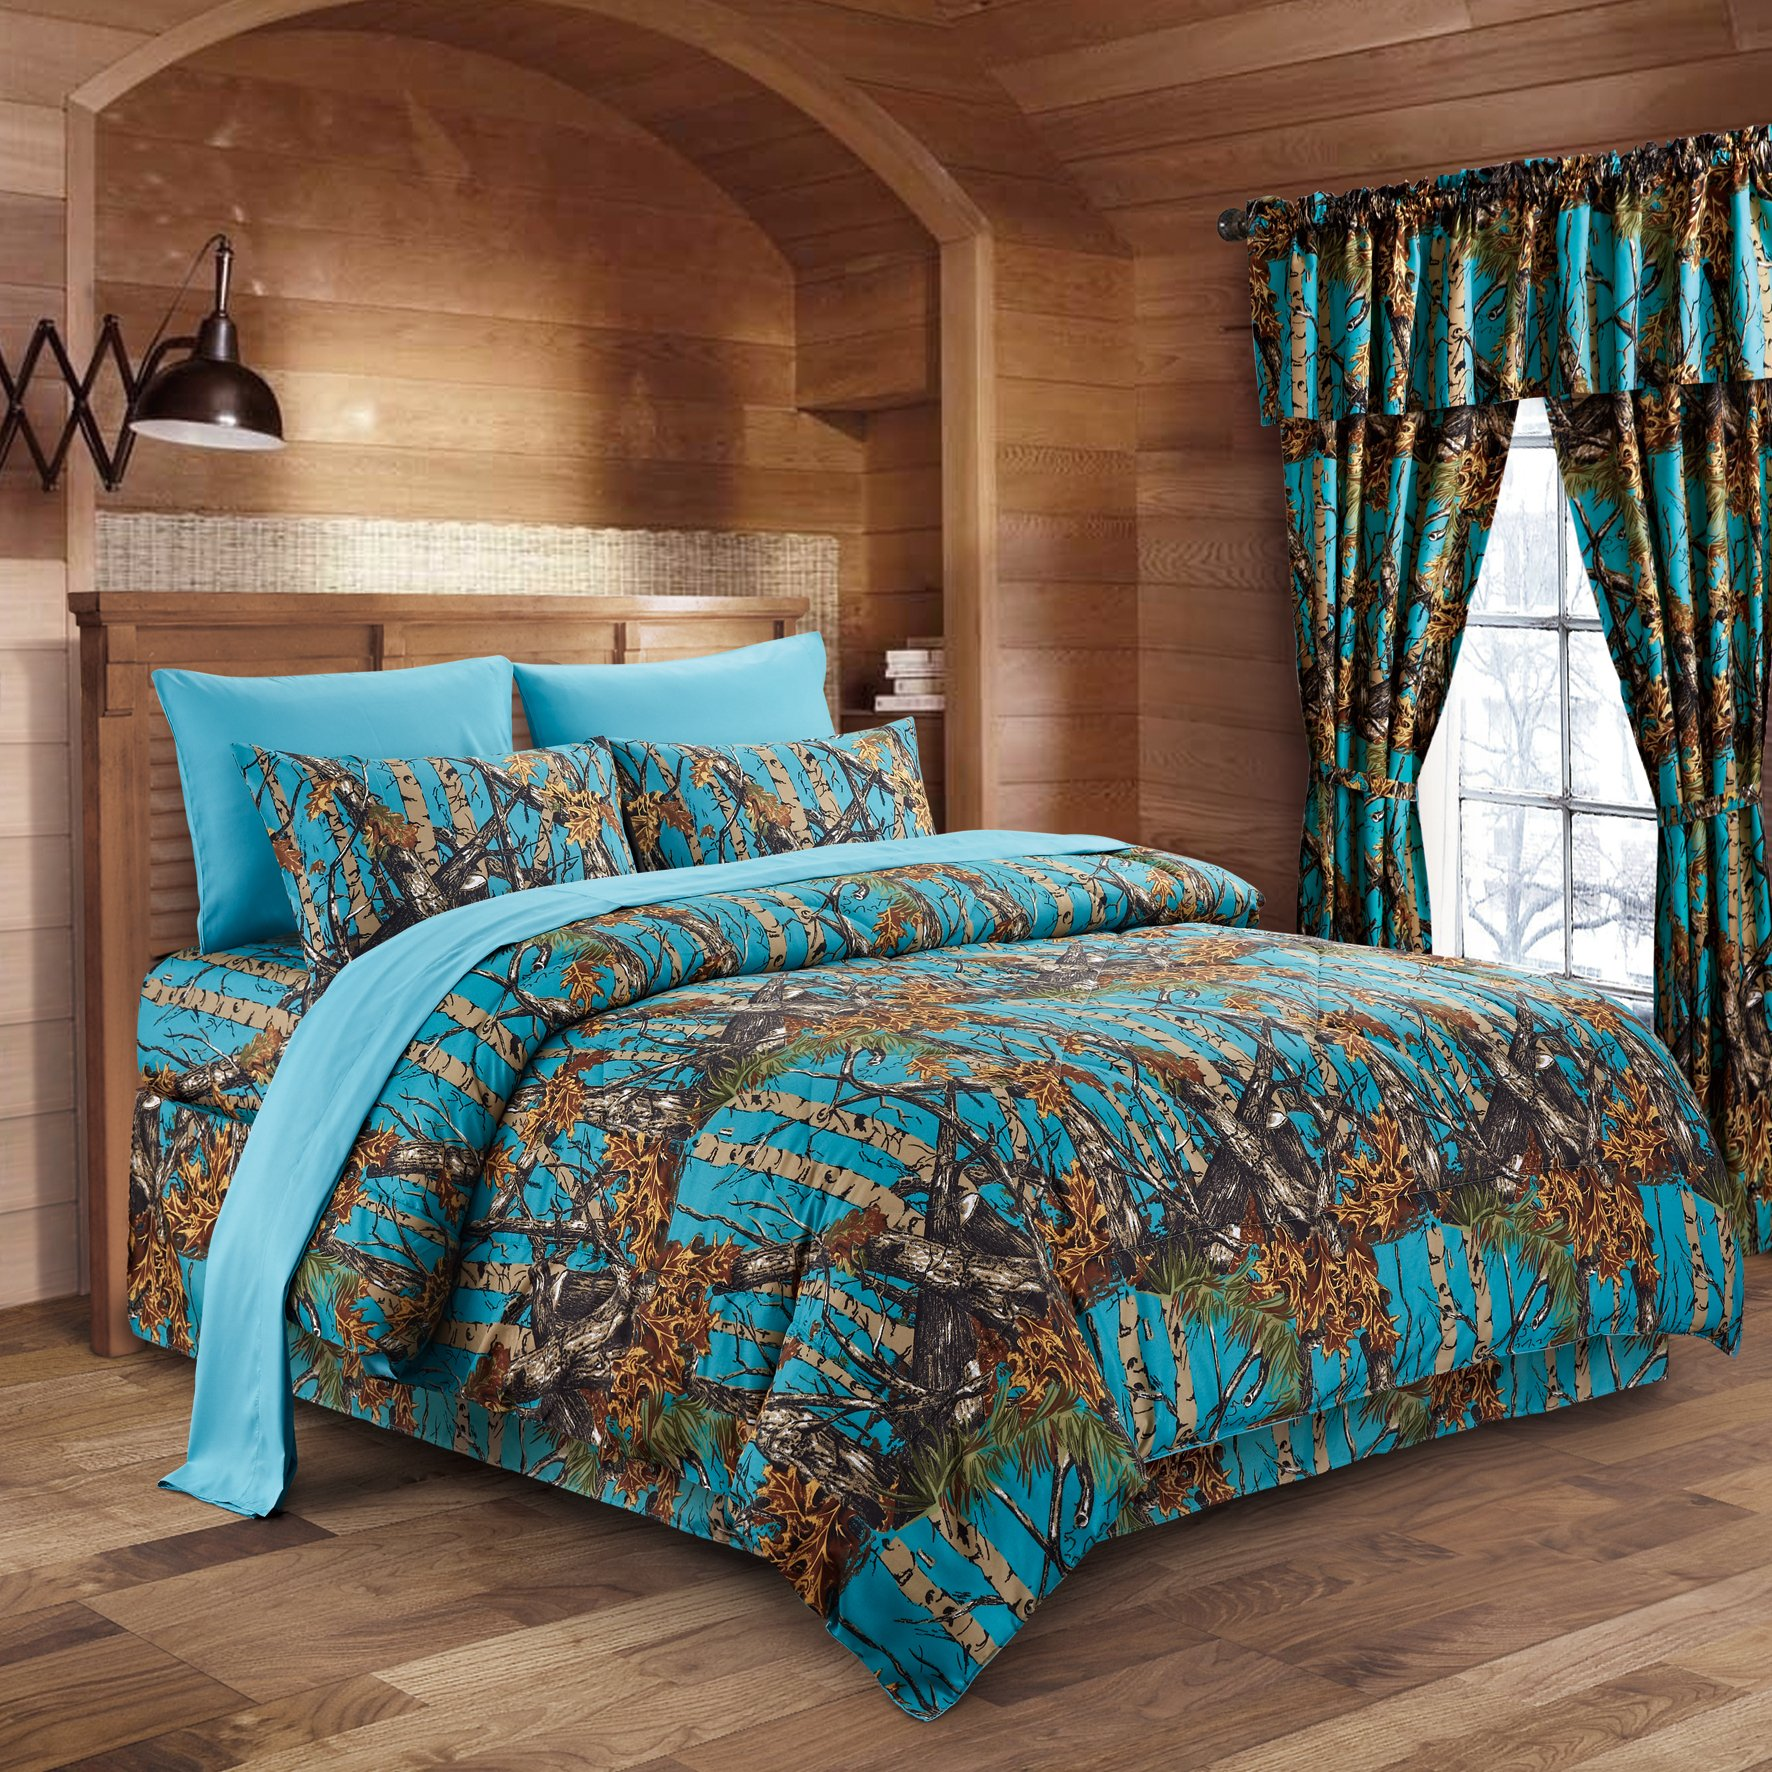 The Woods Sea Breeze Camouflage Twin 5pc Premium Luxury Comforter, Sheet, Pillowcases, and Bed Skirt Set by Regal Comfort Camo Bedding Set For Hunters Cabin or Rustic Lodge Teens Boys and Girls